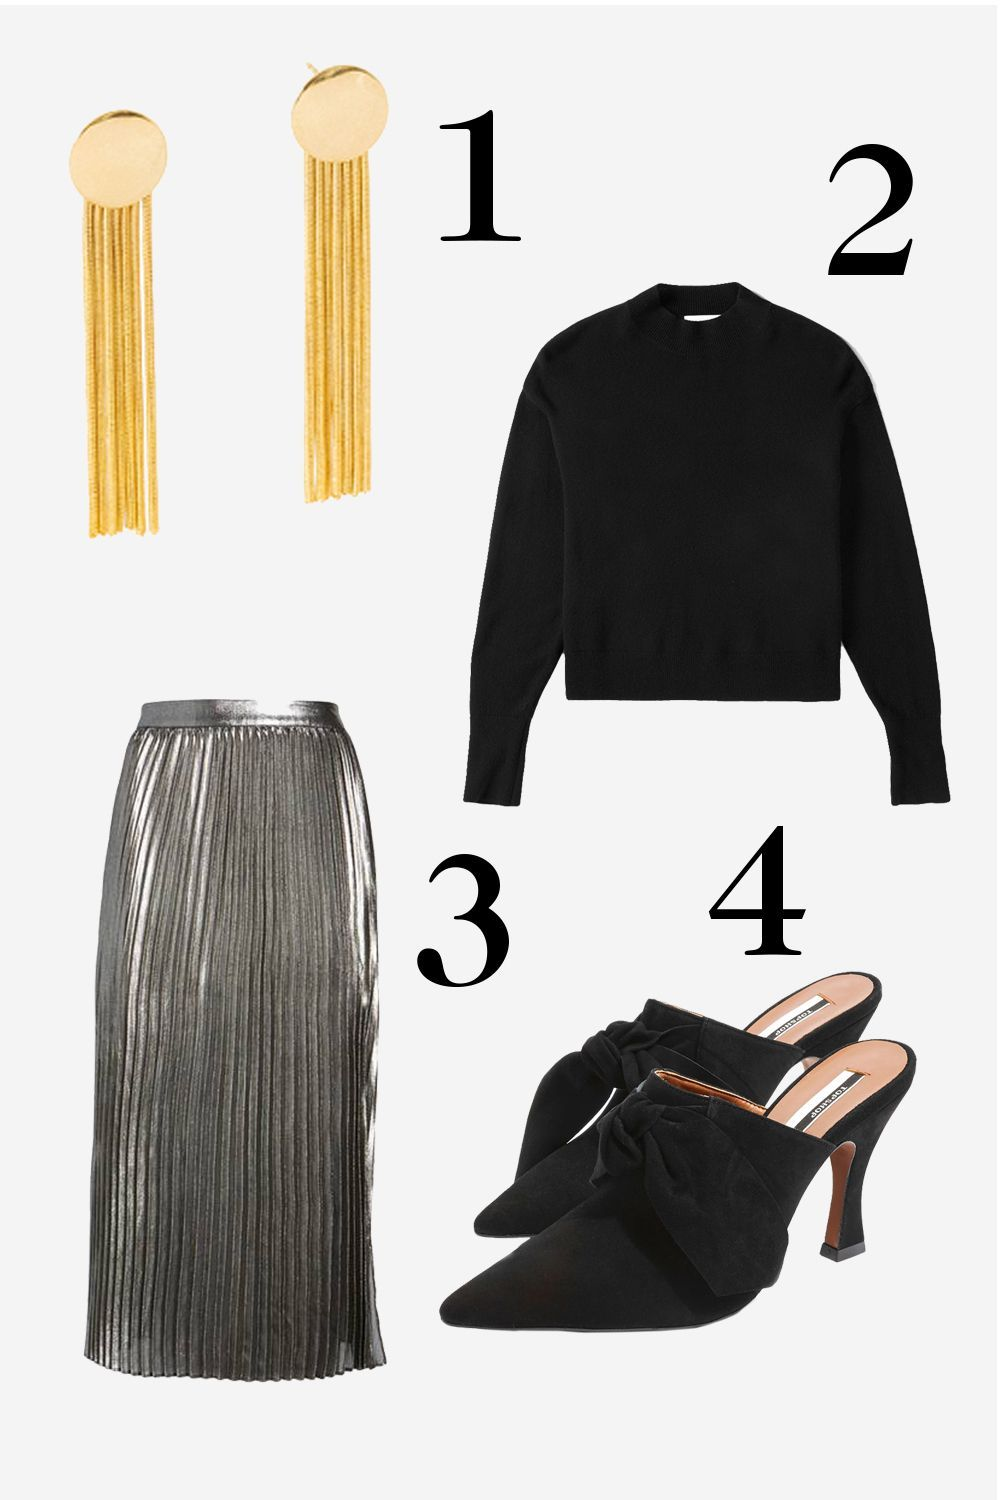 Chic New Year S Eve Outfit Ideas For Ringing In 2020 Eve Outfit New Years Eve Outfits Fashion